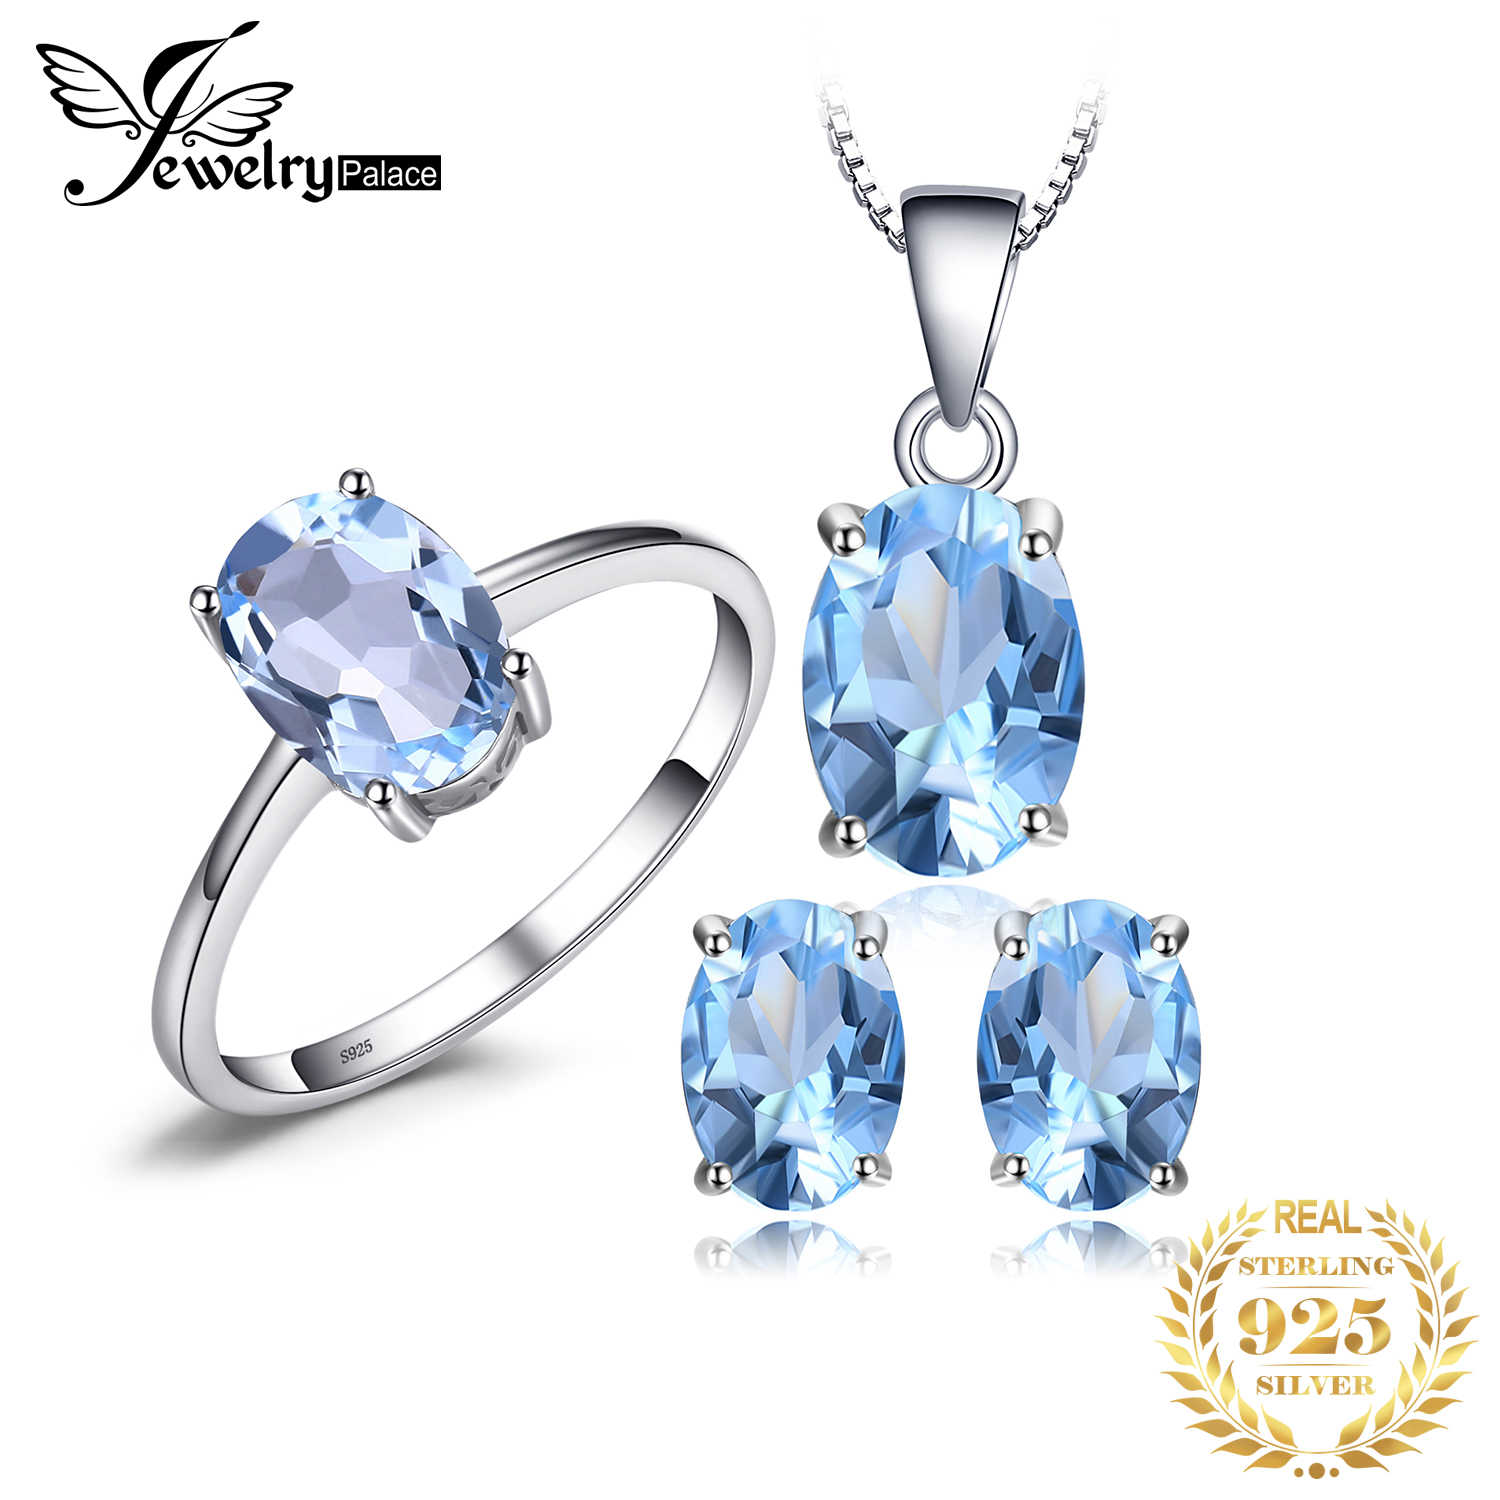 Sky Blue Topaz Chain Pendant Necklace Earrings Ring Set 925 Sterling Silver Gemstones Jewelry Sets Silver 925 Jewelry For Women